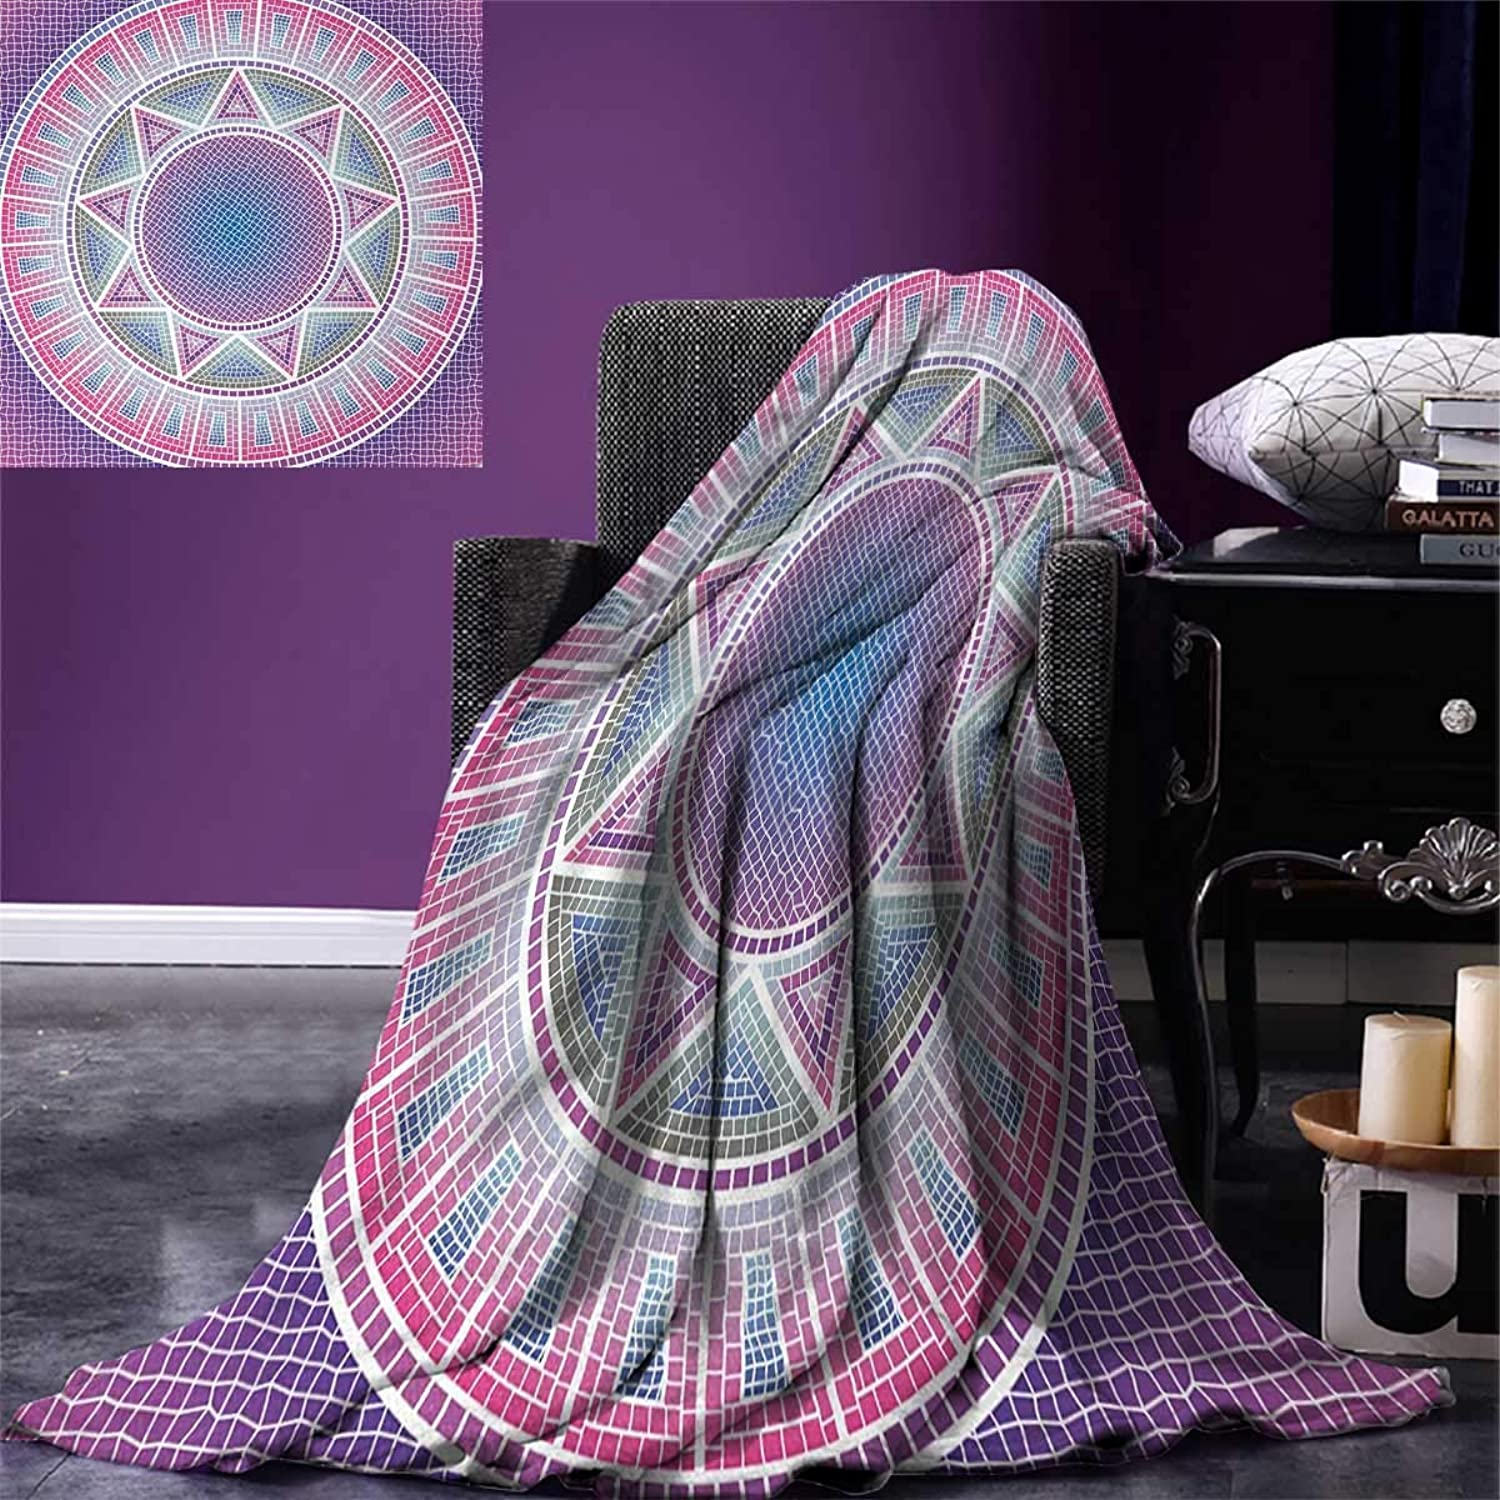 Anniutwo Modern King Flannel Blanket Ombre Inspired Graphic Mosaic Design Round Shaped Sun Like Artwork Weave Pattern Extra Long Blanket 90 x108  Pink Purple bluee White